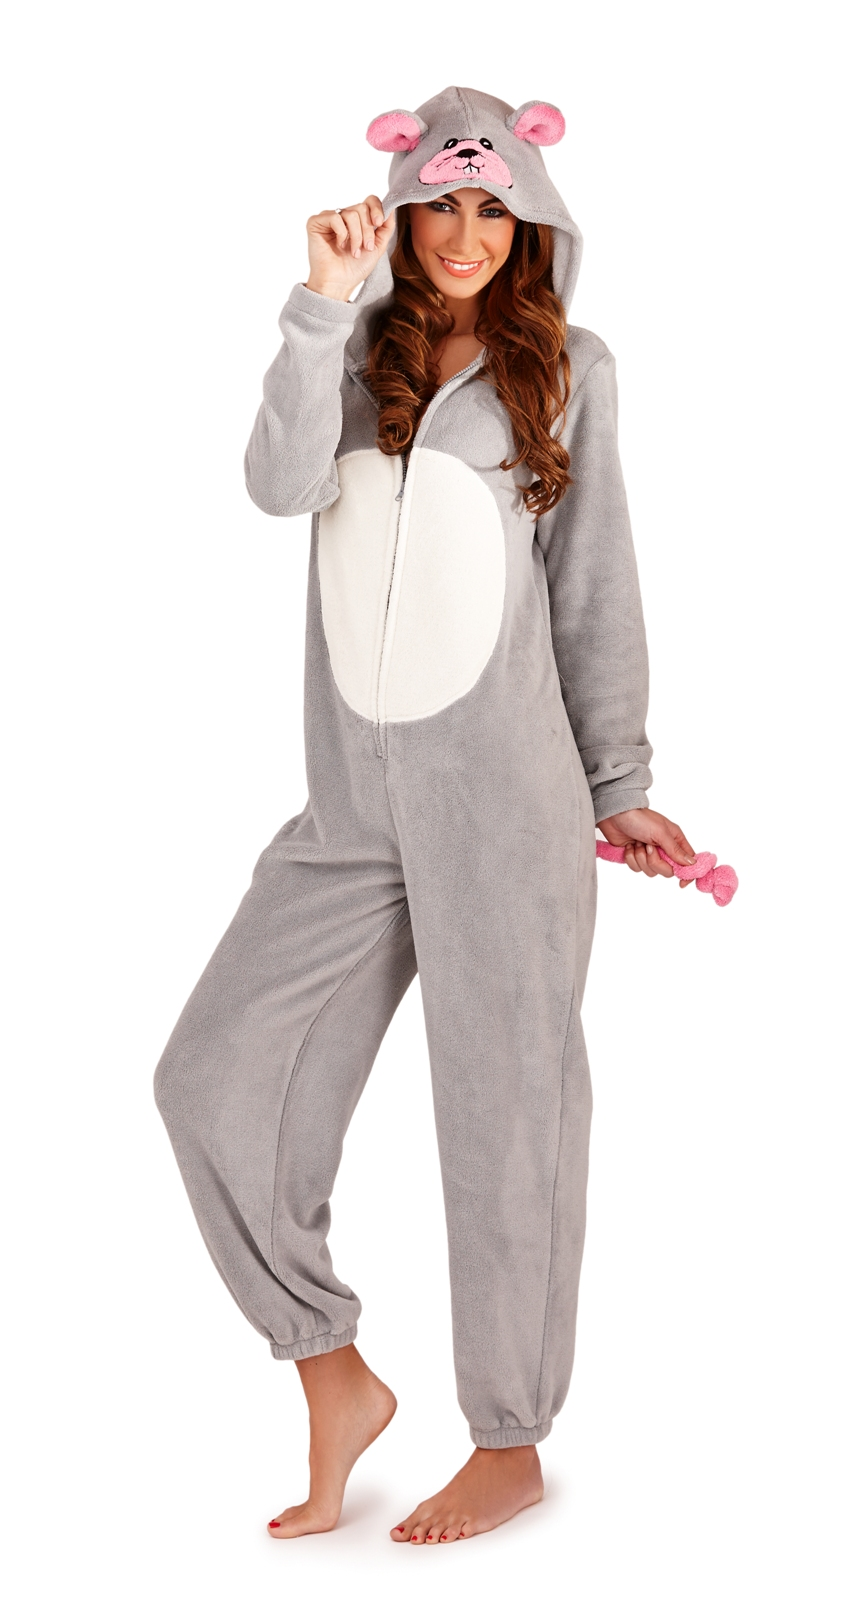 Womens Onesie Fashion Playsuit Ladies Jumpsuit. from $ 22 00 Prime. out of 5 stars Silver Lilly. Unisex Adult Pajamas - Plush One Piece Cosplay Walrus Animal Costume $ 29 99 Prime. out of 5 stars vavalad. Sloth Onesies Adult Animal Pajamas Kigurumi Unisex Halloween Costume for Women .